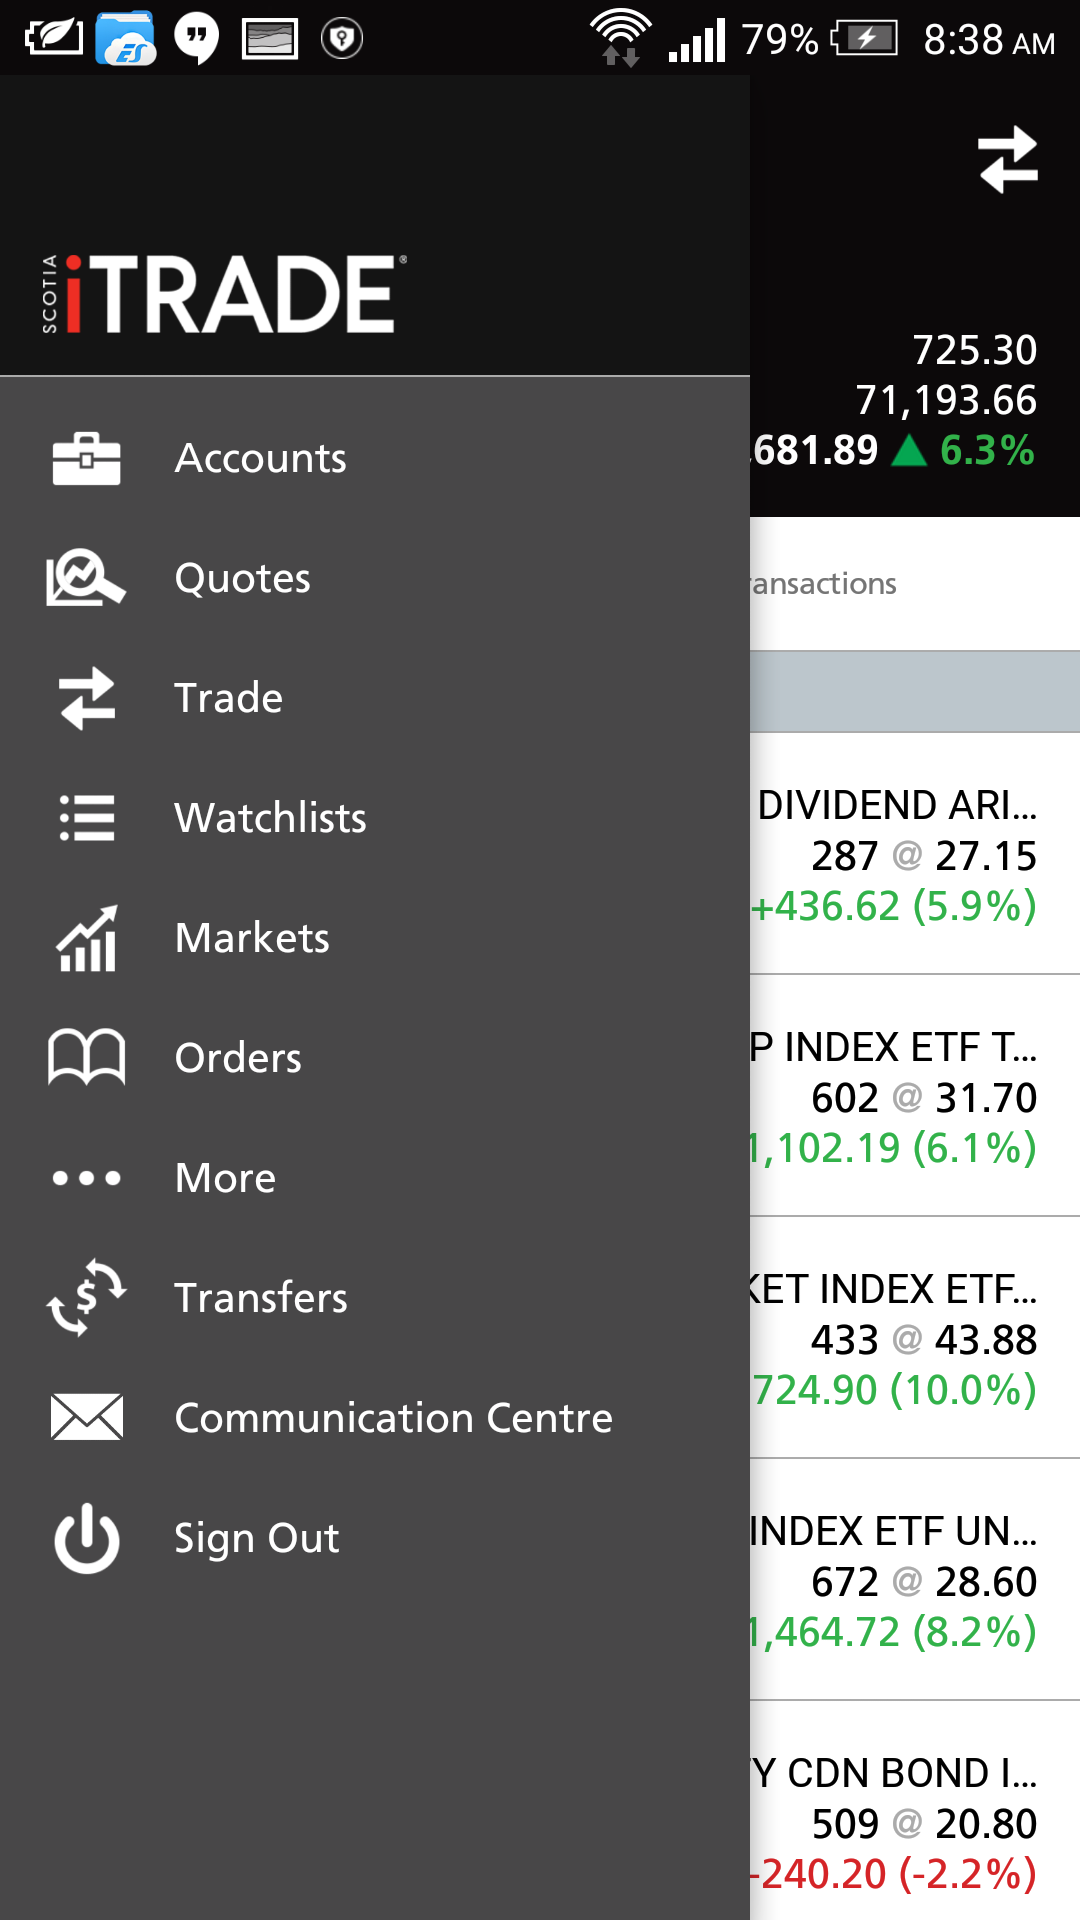 Scotia iTrade Mobile Trading